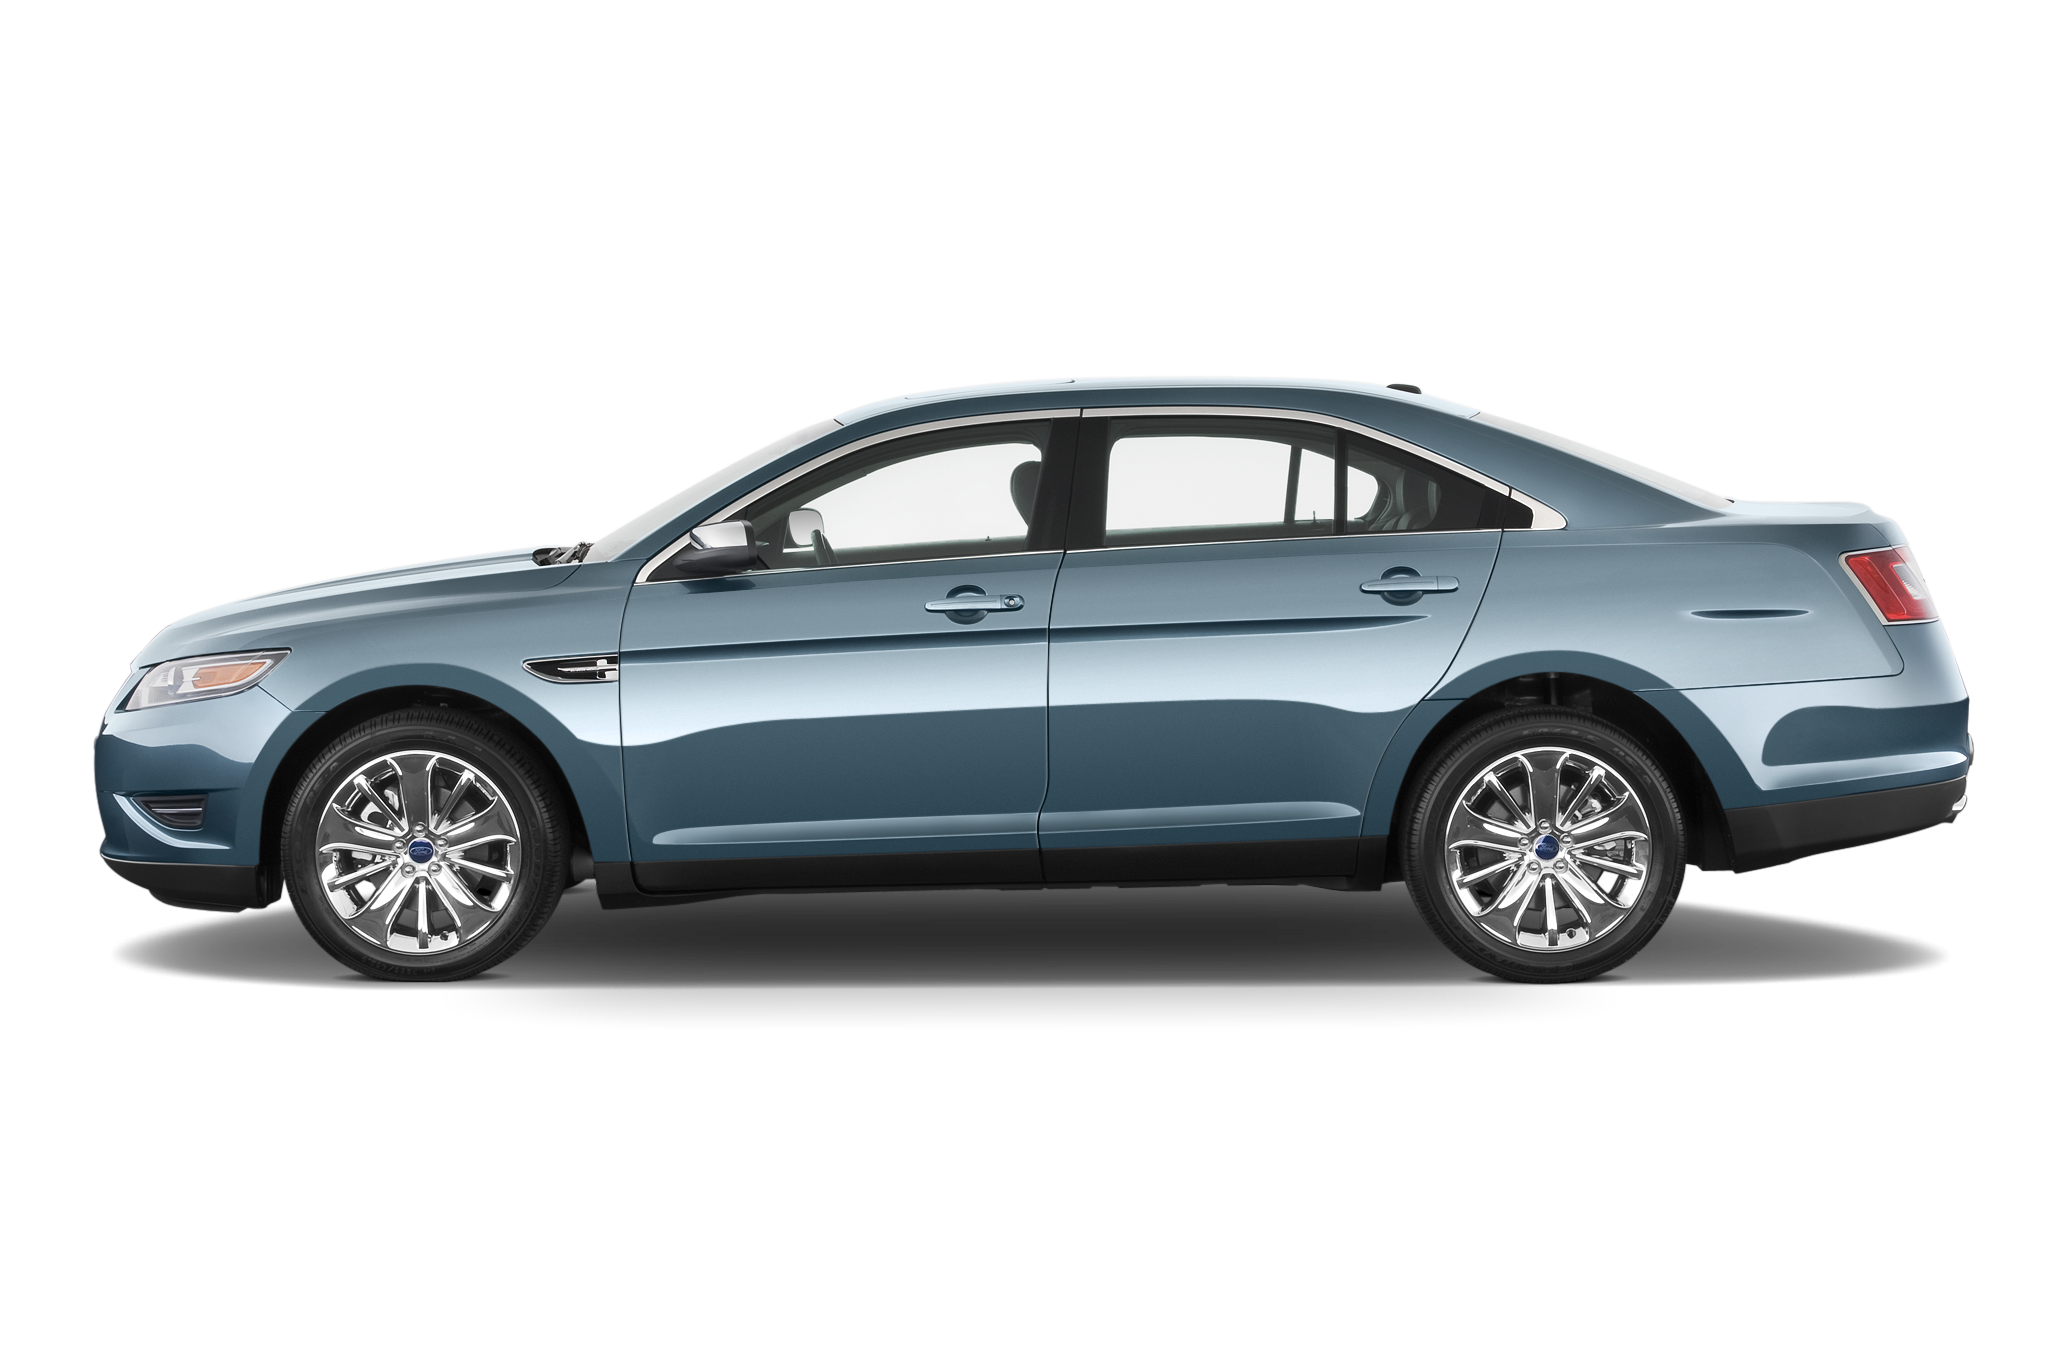 2010 ford taurus sho first look latest news features and reviews automobile magazine. Black Bedroom Furniture Sets. Home Design Ideas